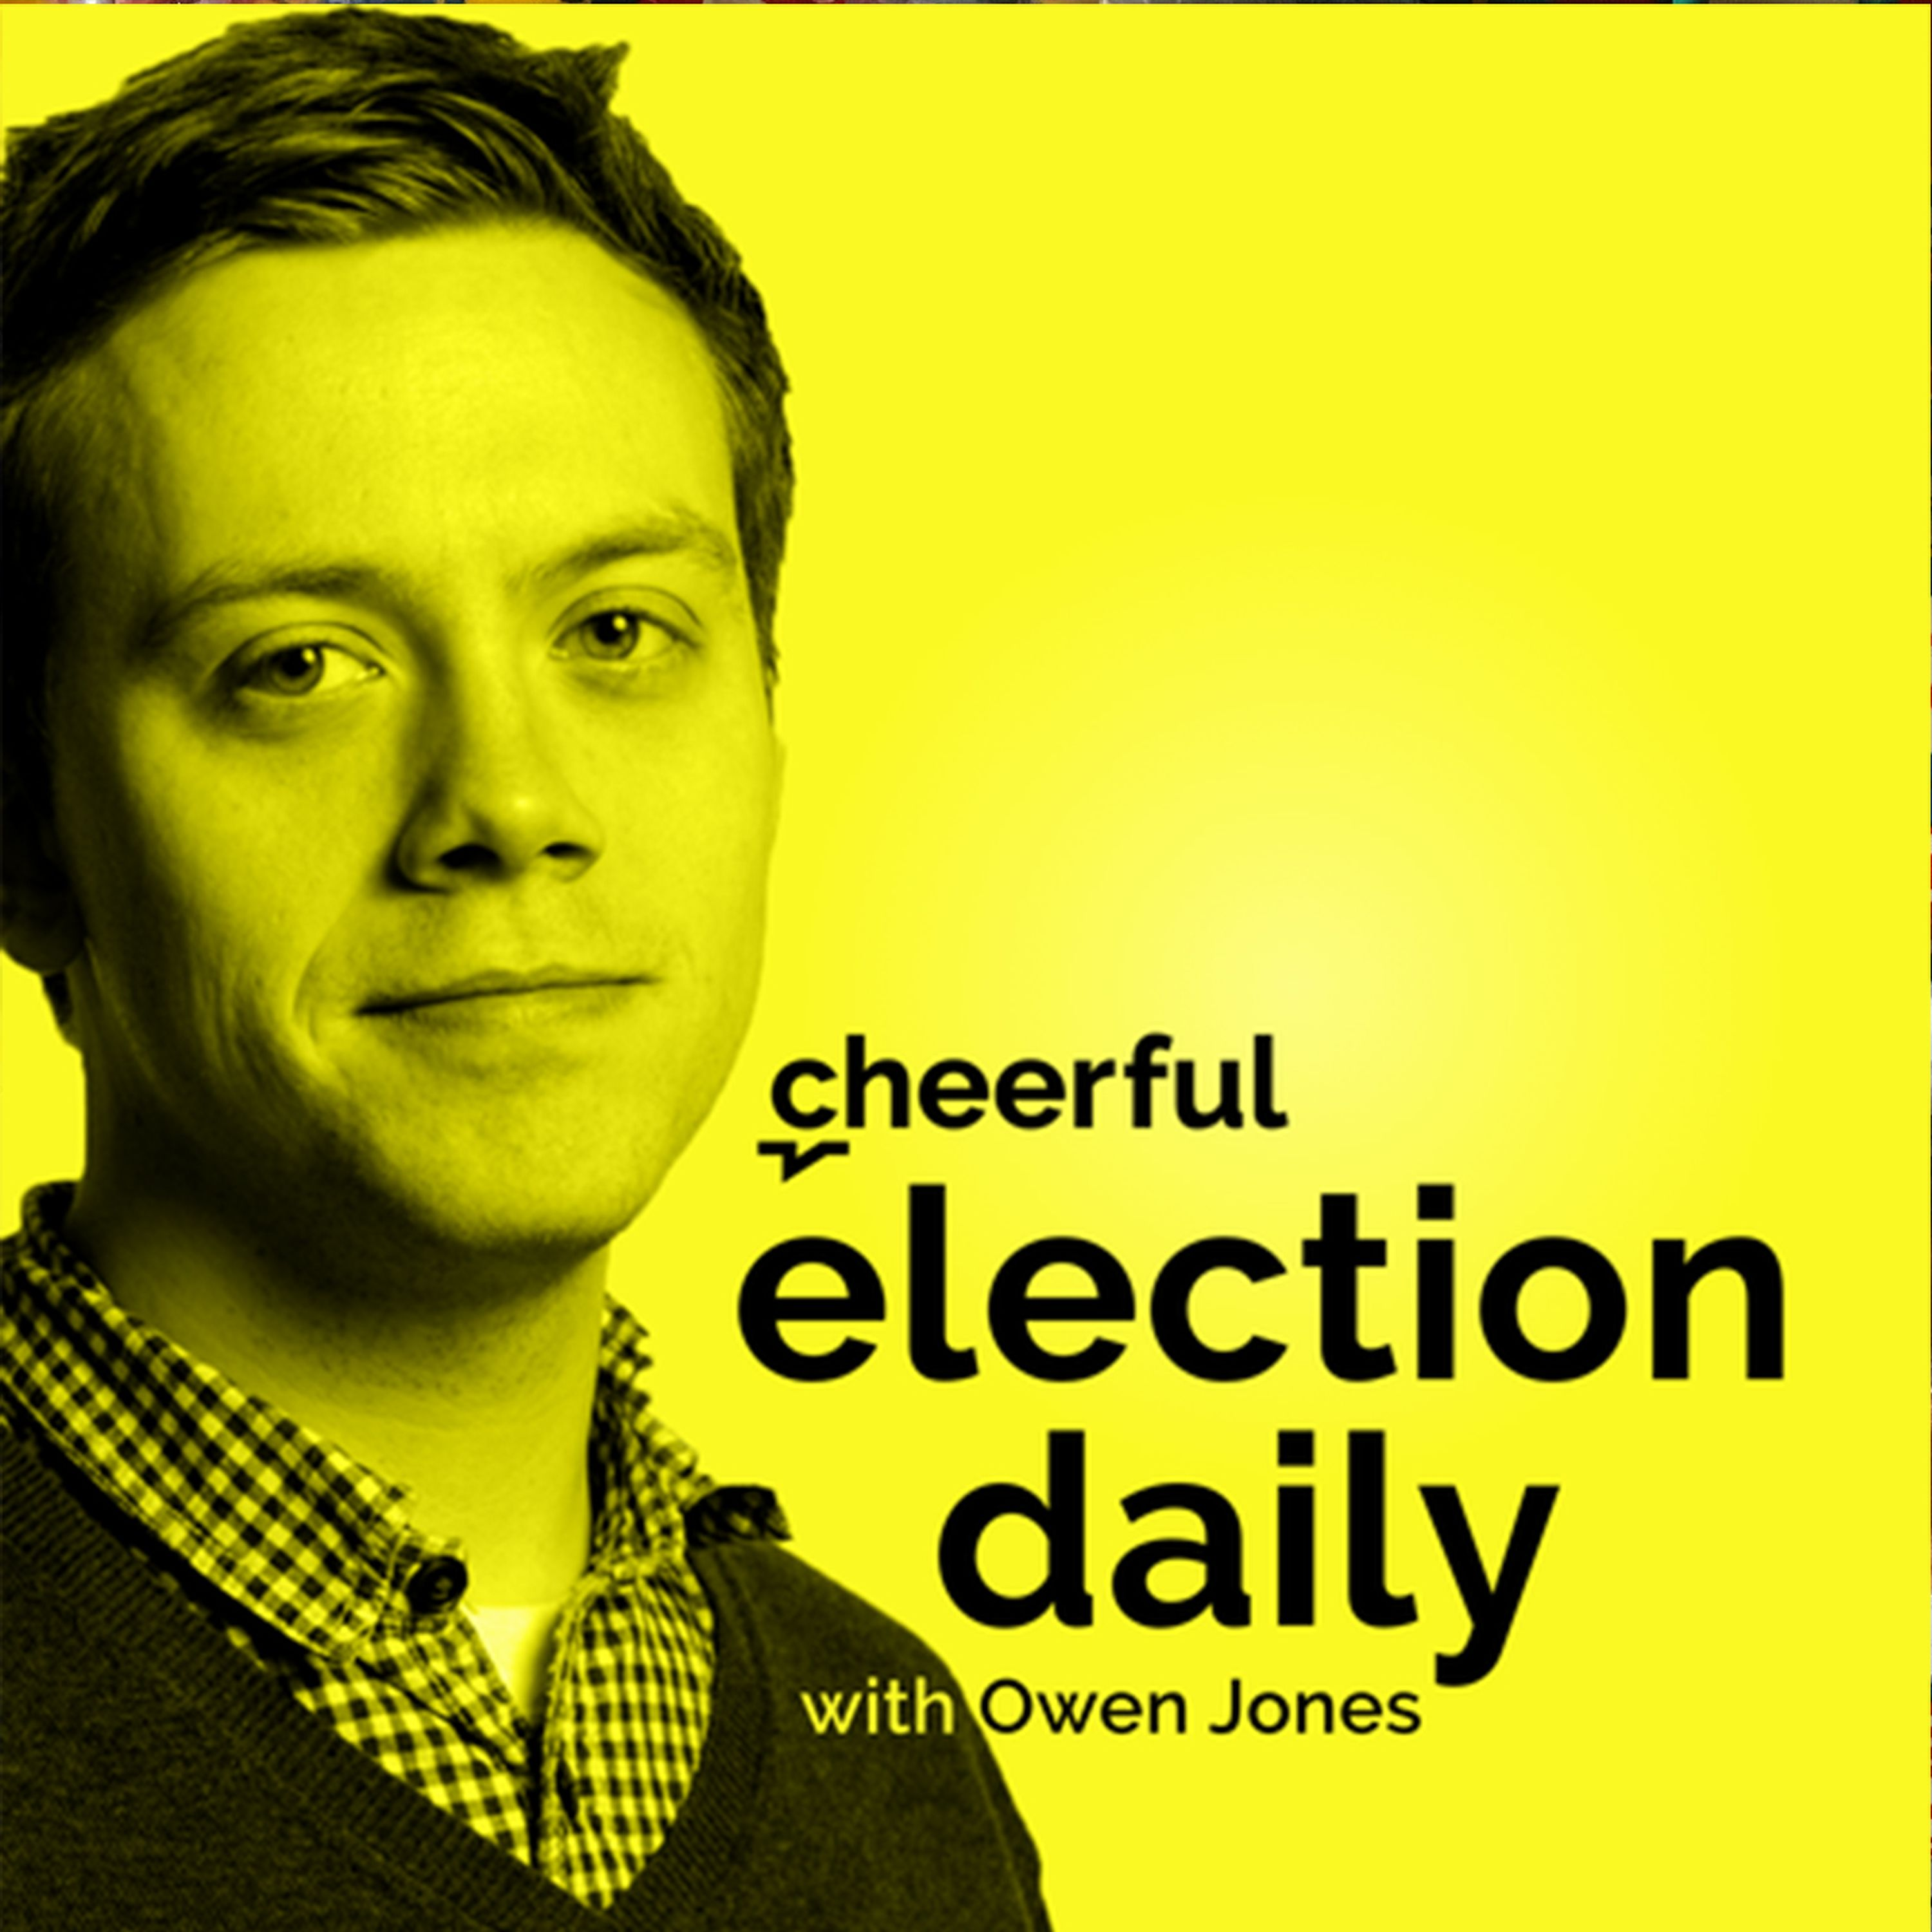 Cheerful Election Daily Preview - 27 DAYS TO GO - NHS distractions and speedier connections